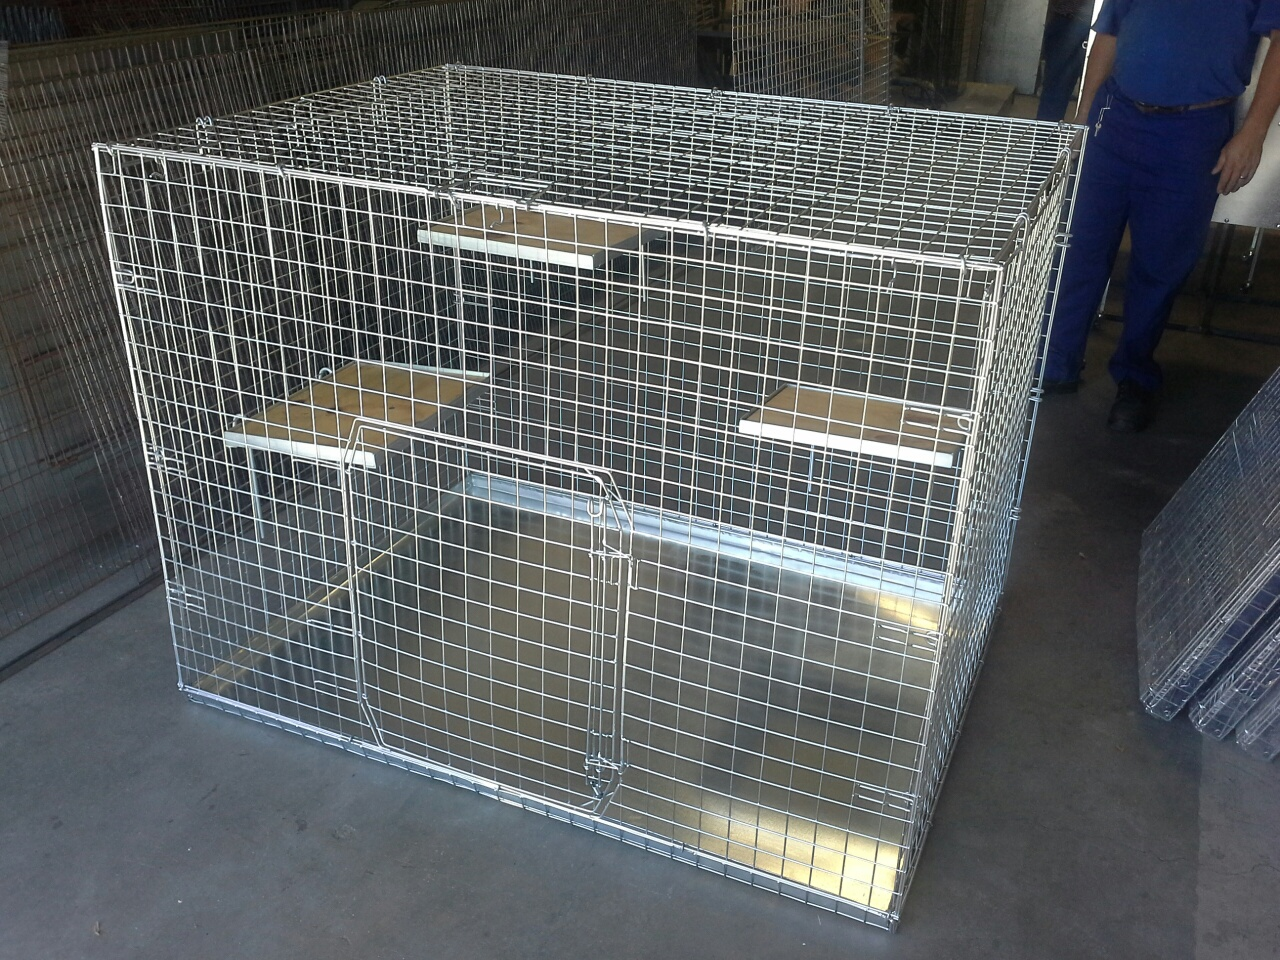 Super Jumbo Fold Up Cat Cage Crate 50 215 50 Mesh With Tray